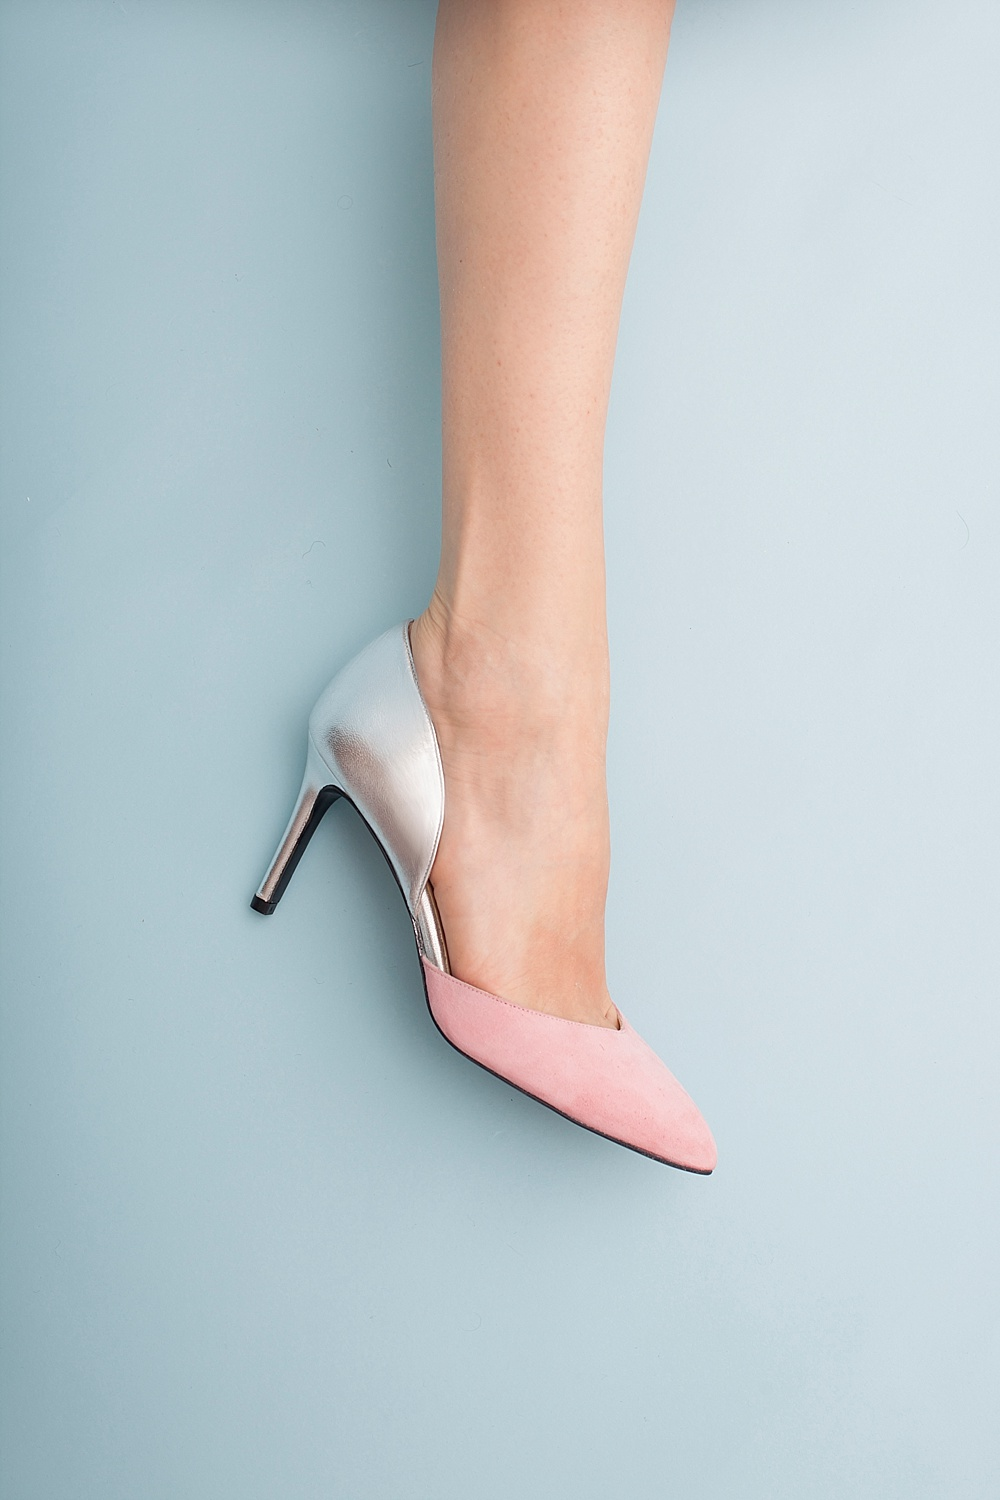 d753350db2d9 ... Faber Novella Comfortable Stylish Wedding Shoes. The  Bianca  by  a  href